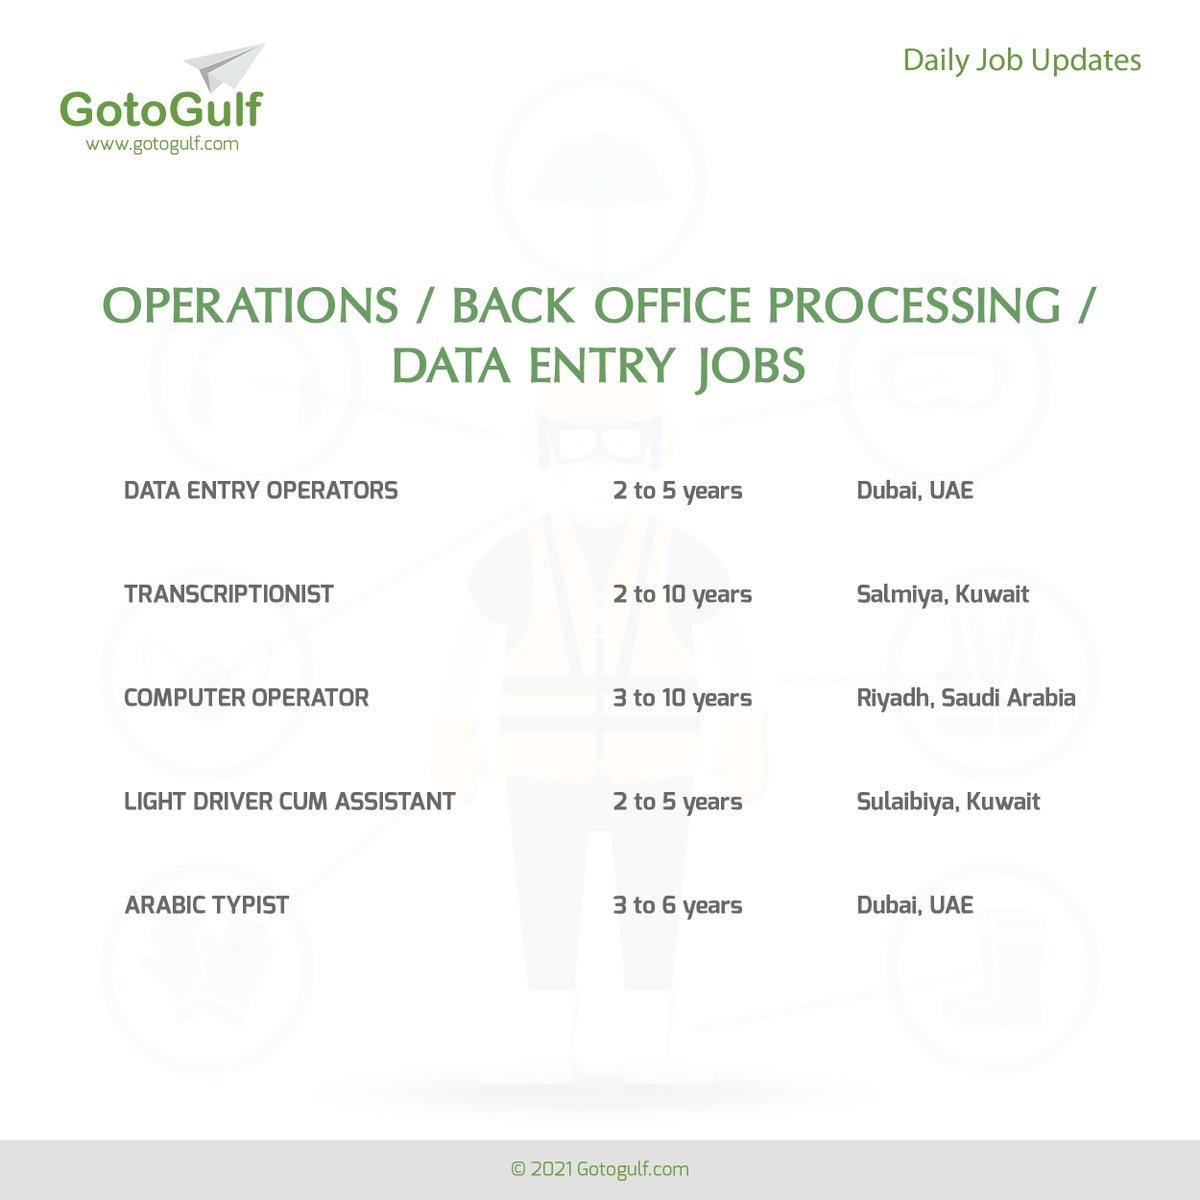 Click on the below link to apply for the job vacancies,   #gotogulf #jobs #middleeast #jobseeker #recruitment #operation #back #office #data #entry #transcriptionist #computer #operator #arabic #typist #light #driver #assistant #saudiarabia #kuwait #uae